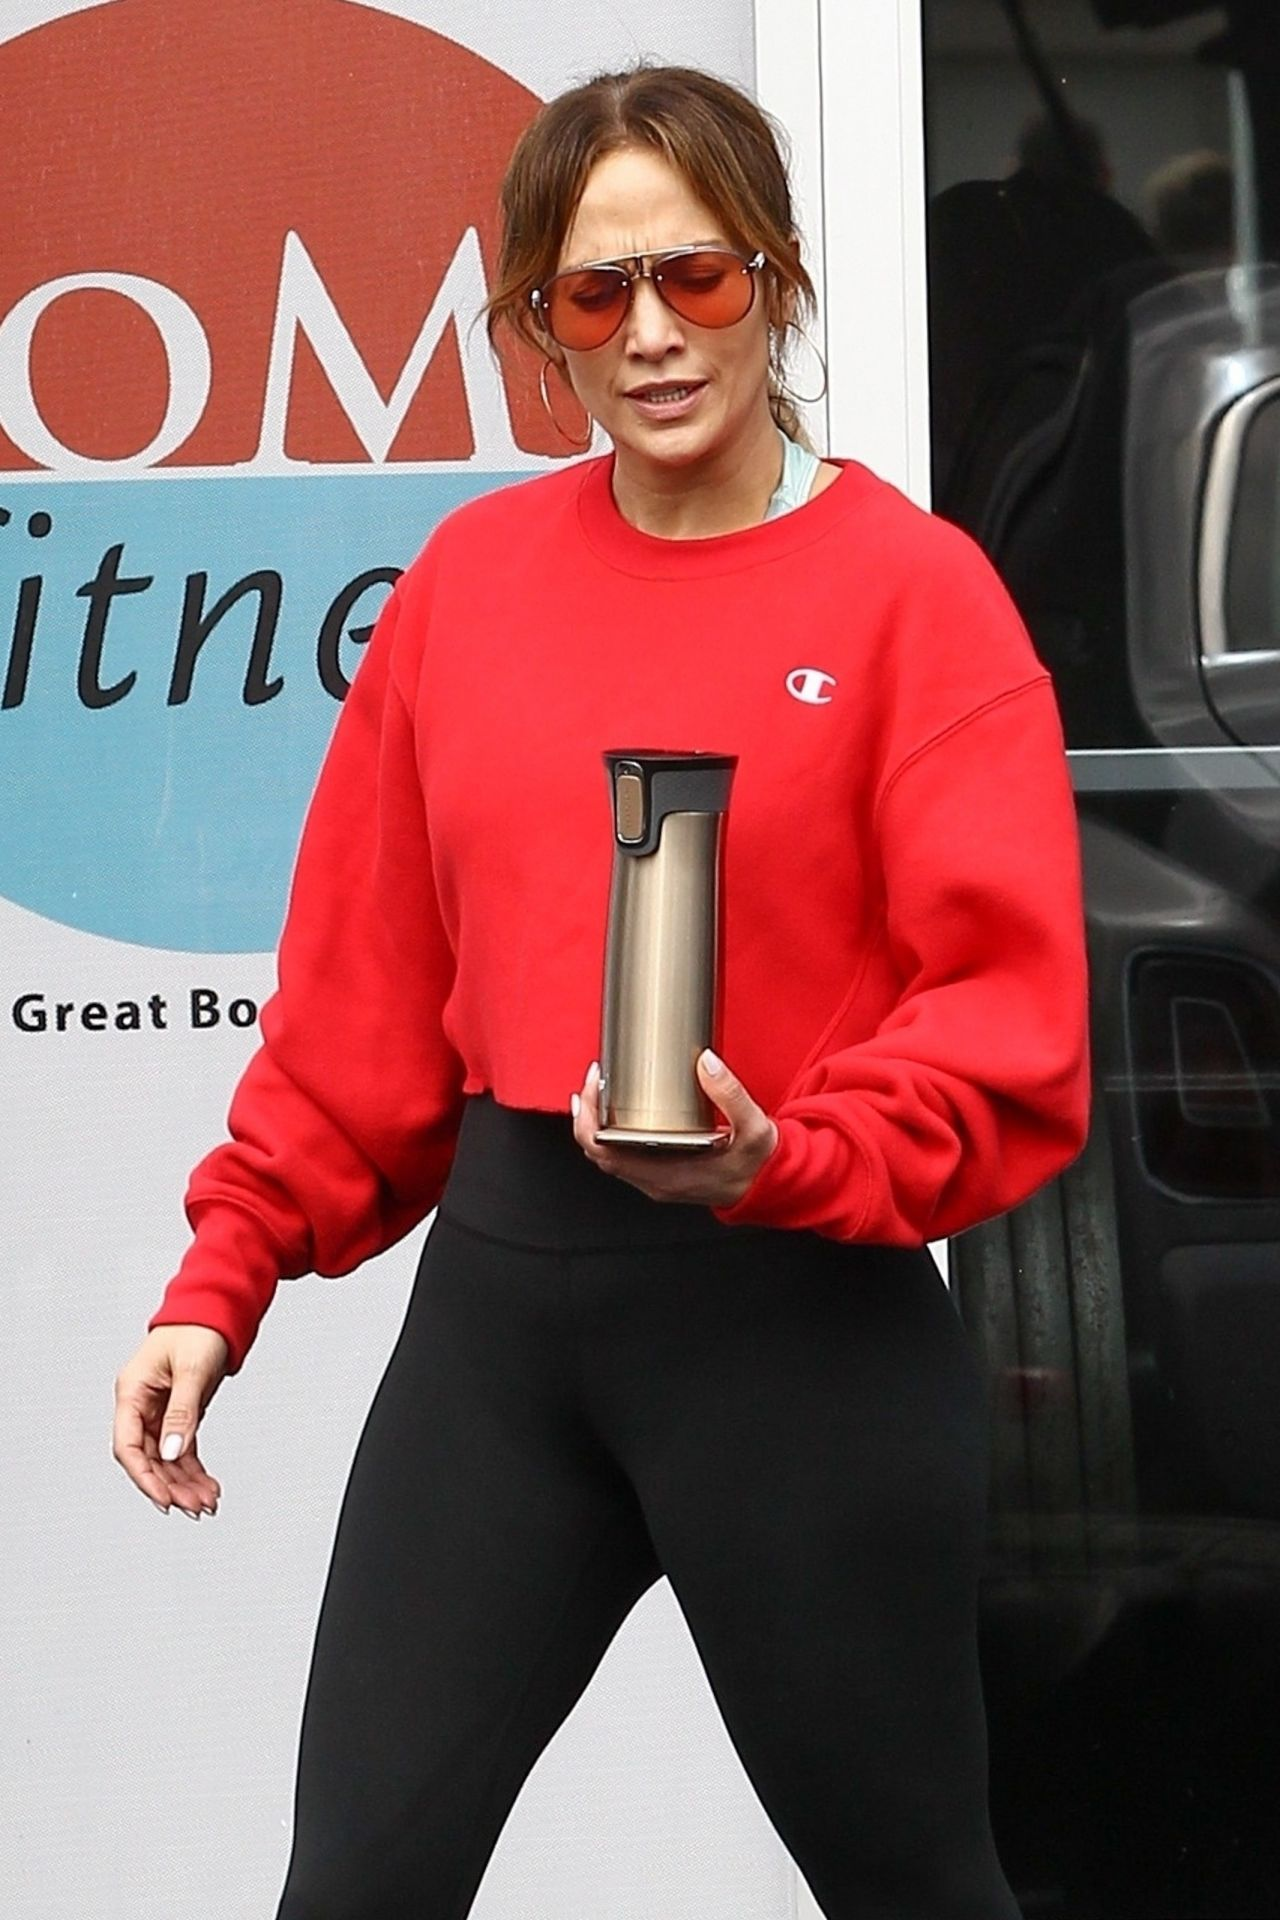 Jennifer Lopez Hit The Gym In Miami 01 23 2019